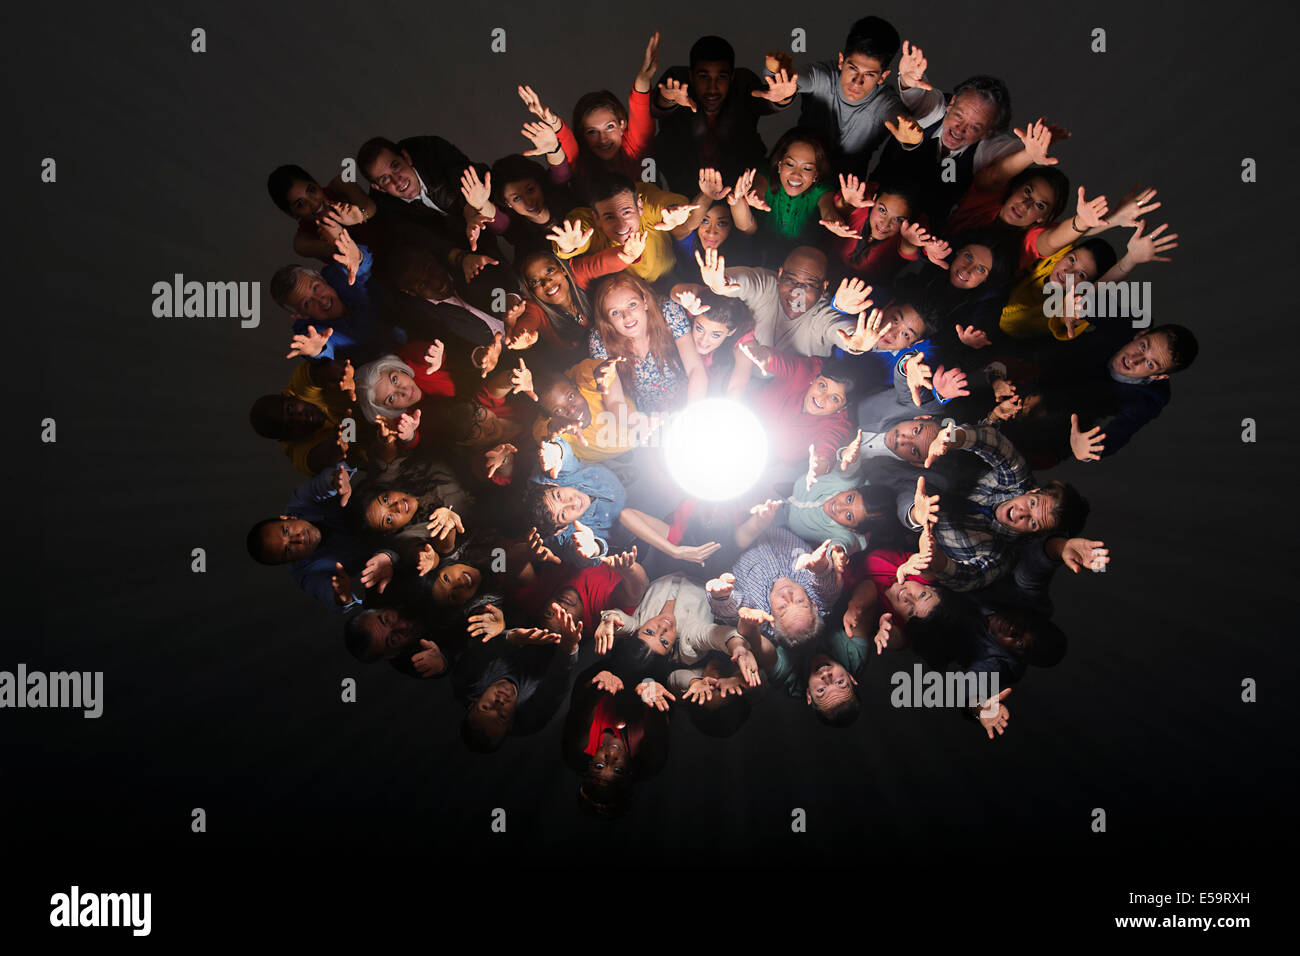 Diverse crowd cheering around bright light - Stock Image